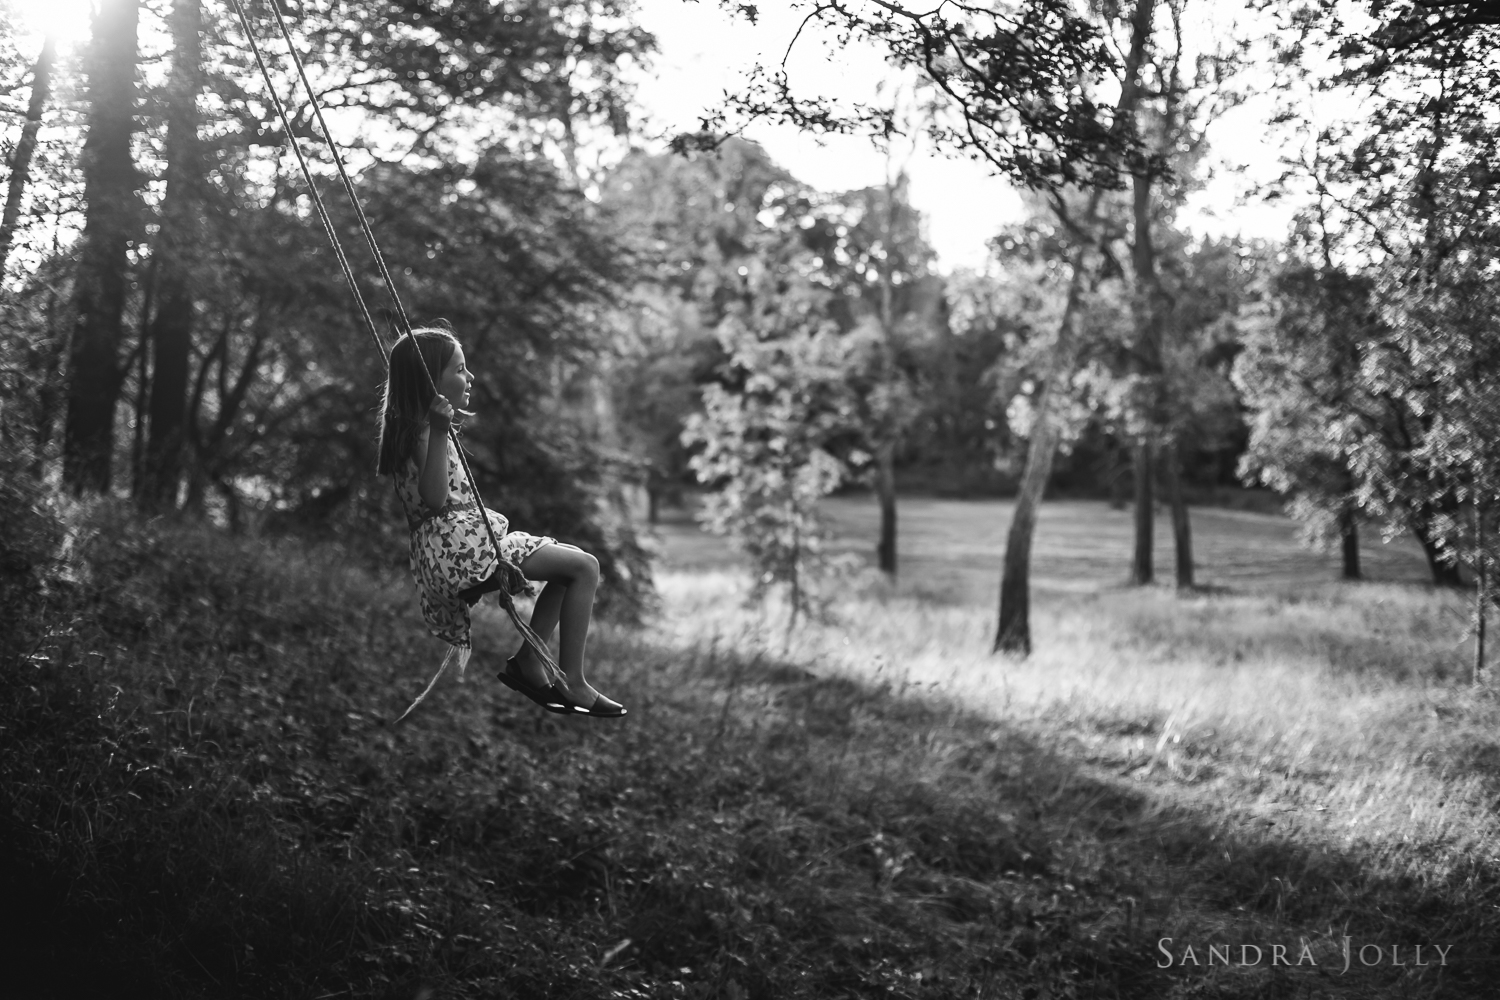 Up, up and away_sandra jolly photography